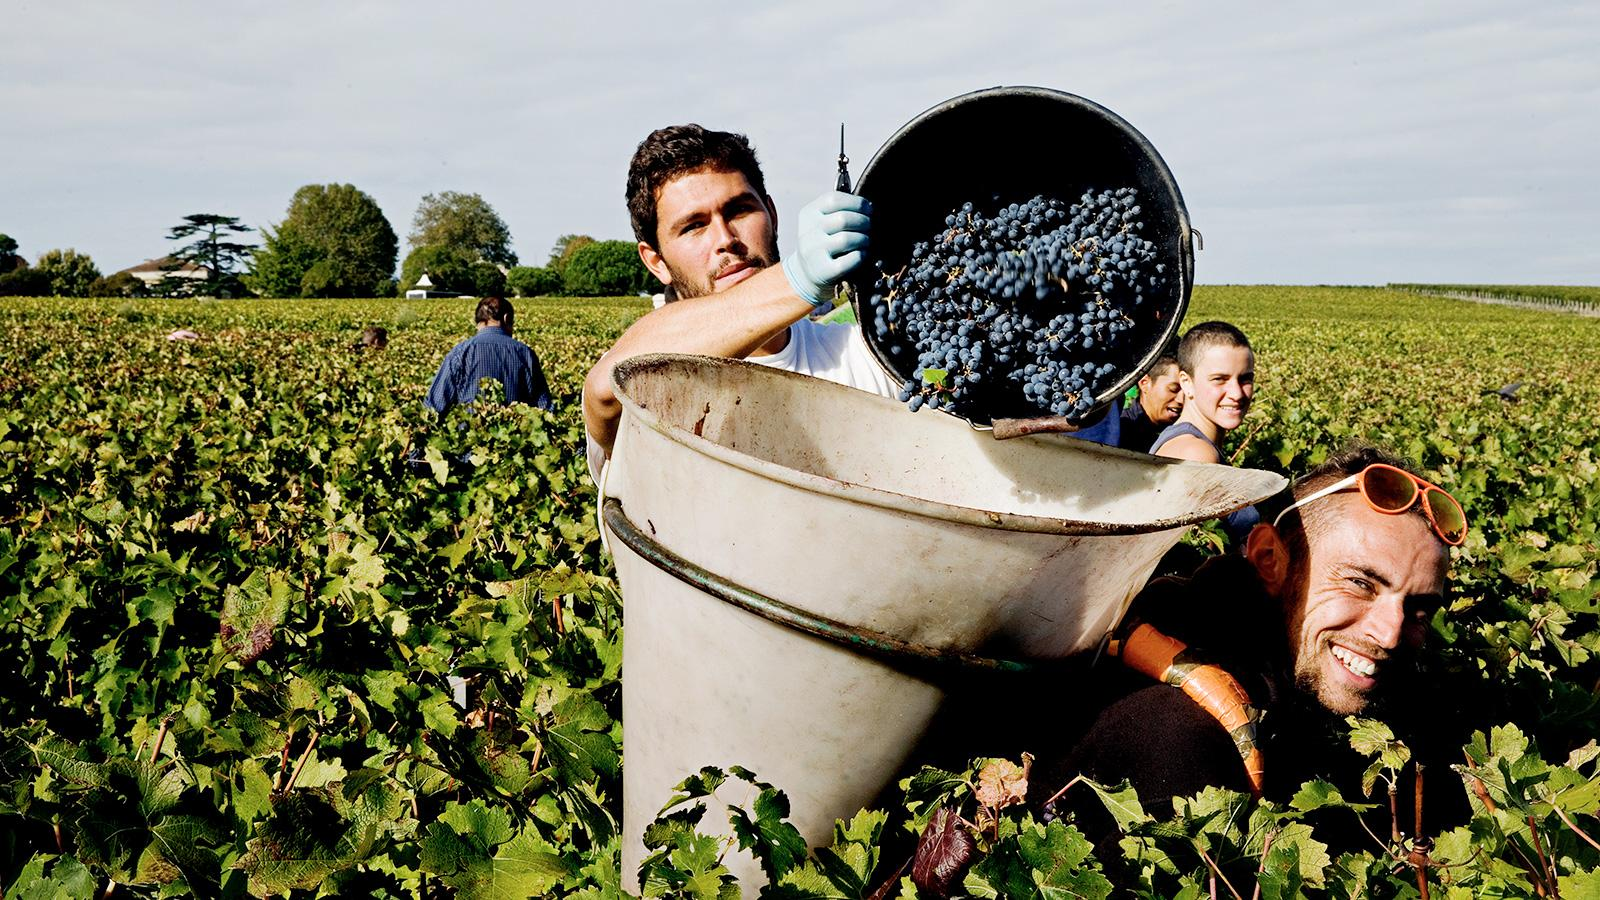 Wine Harvest 2015: Bordeaux Winemakers Believe the Vintage Is a Potential Classic